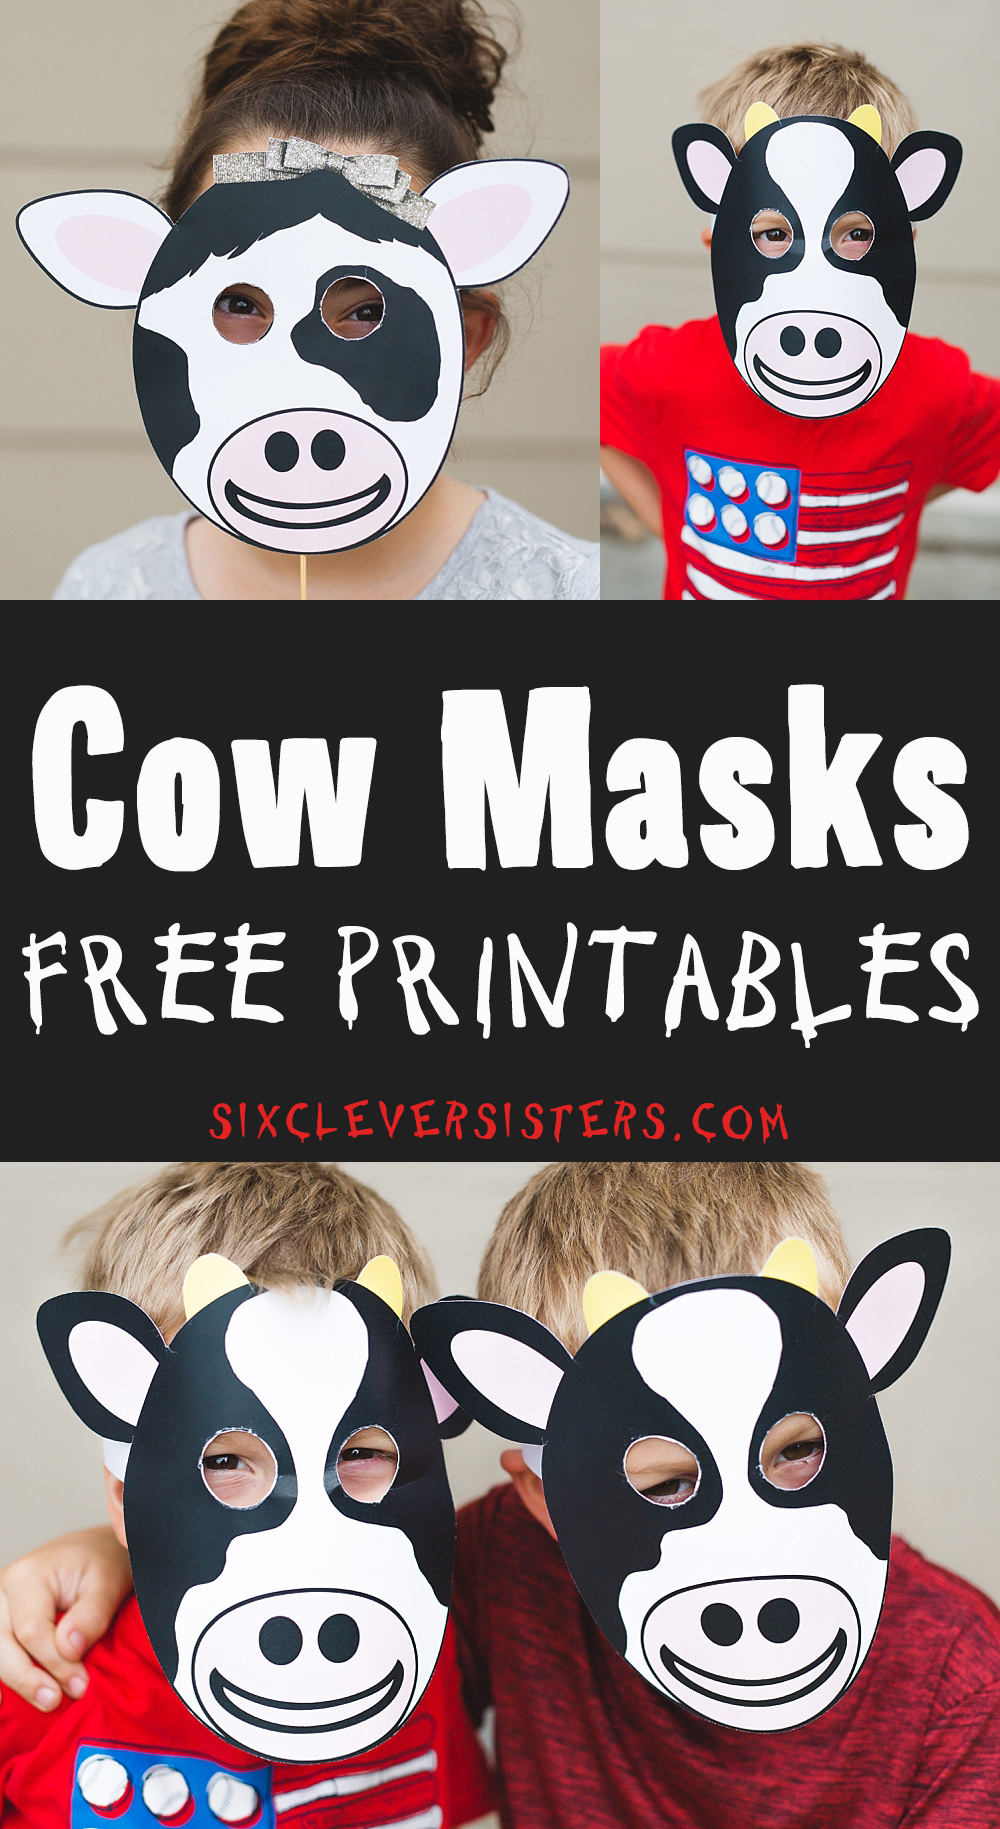 graphic about Chick Fil a Printable Cow Costume named Chick-fil-A Cow Working day Paper Plate Cow Masks With Cost-free